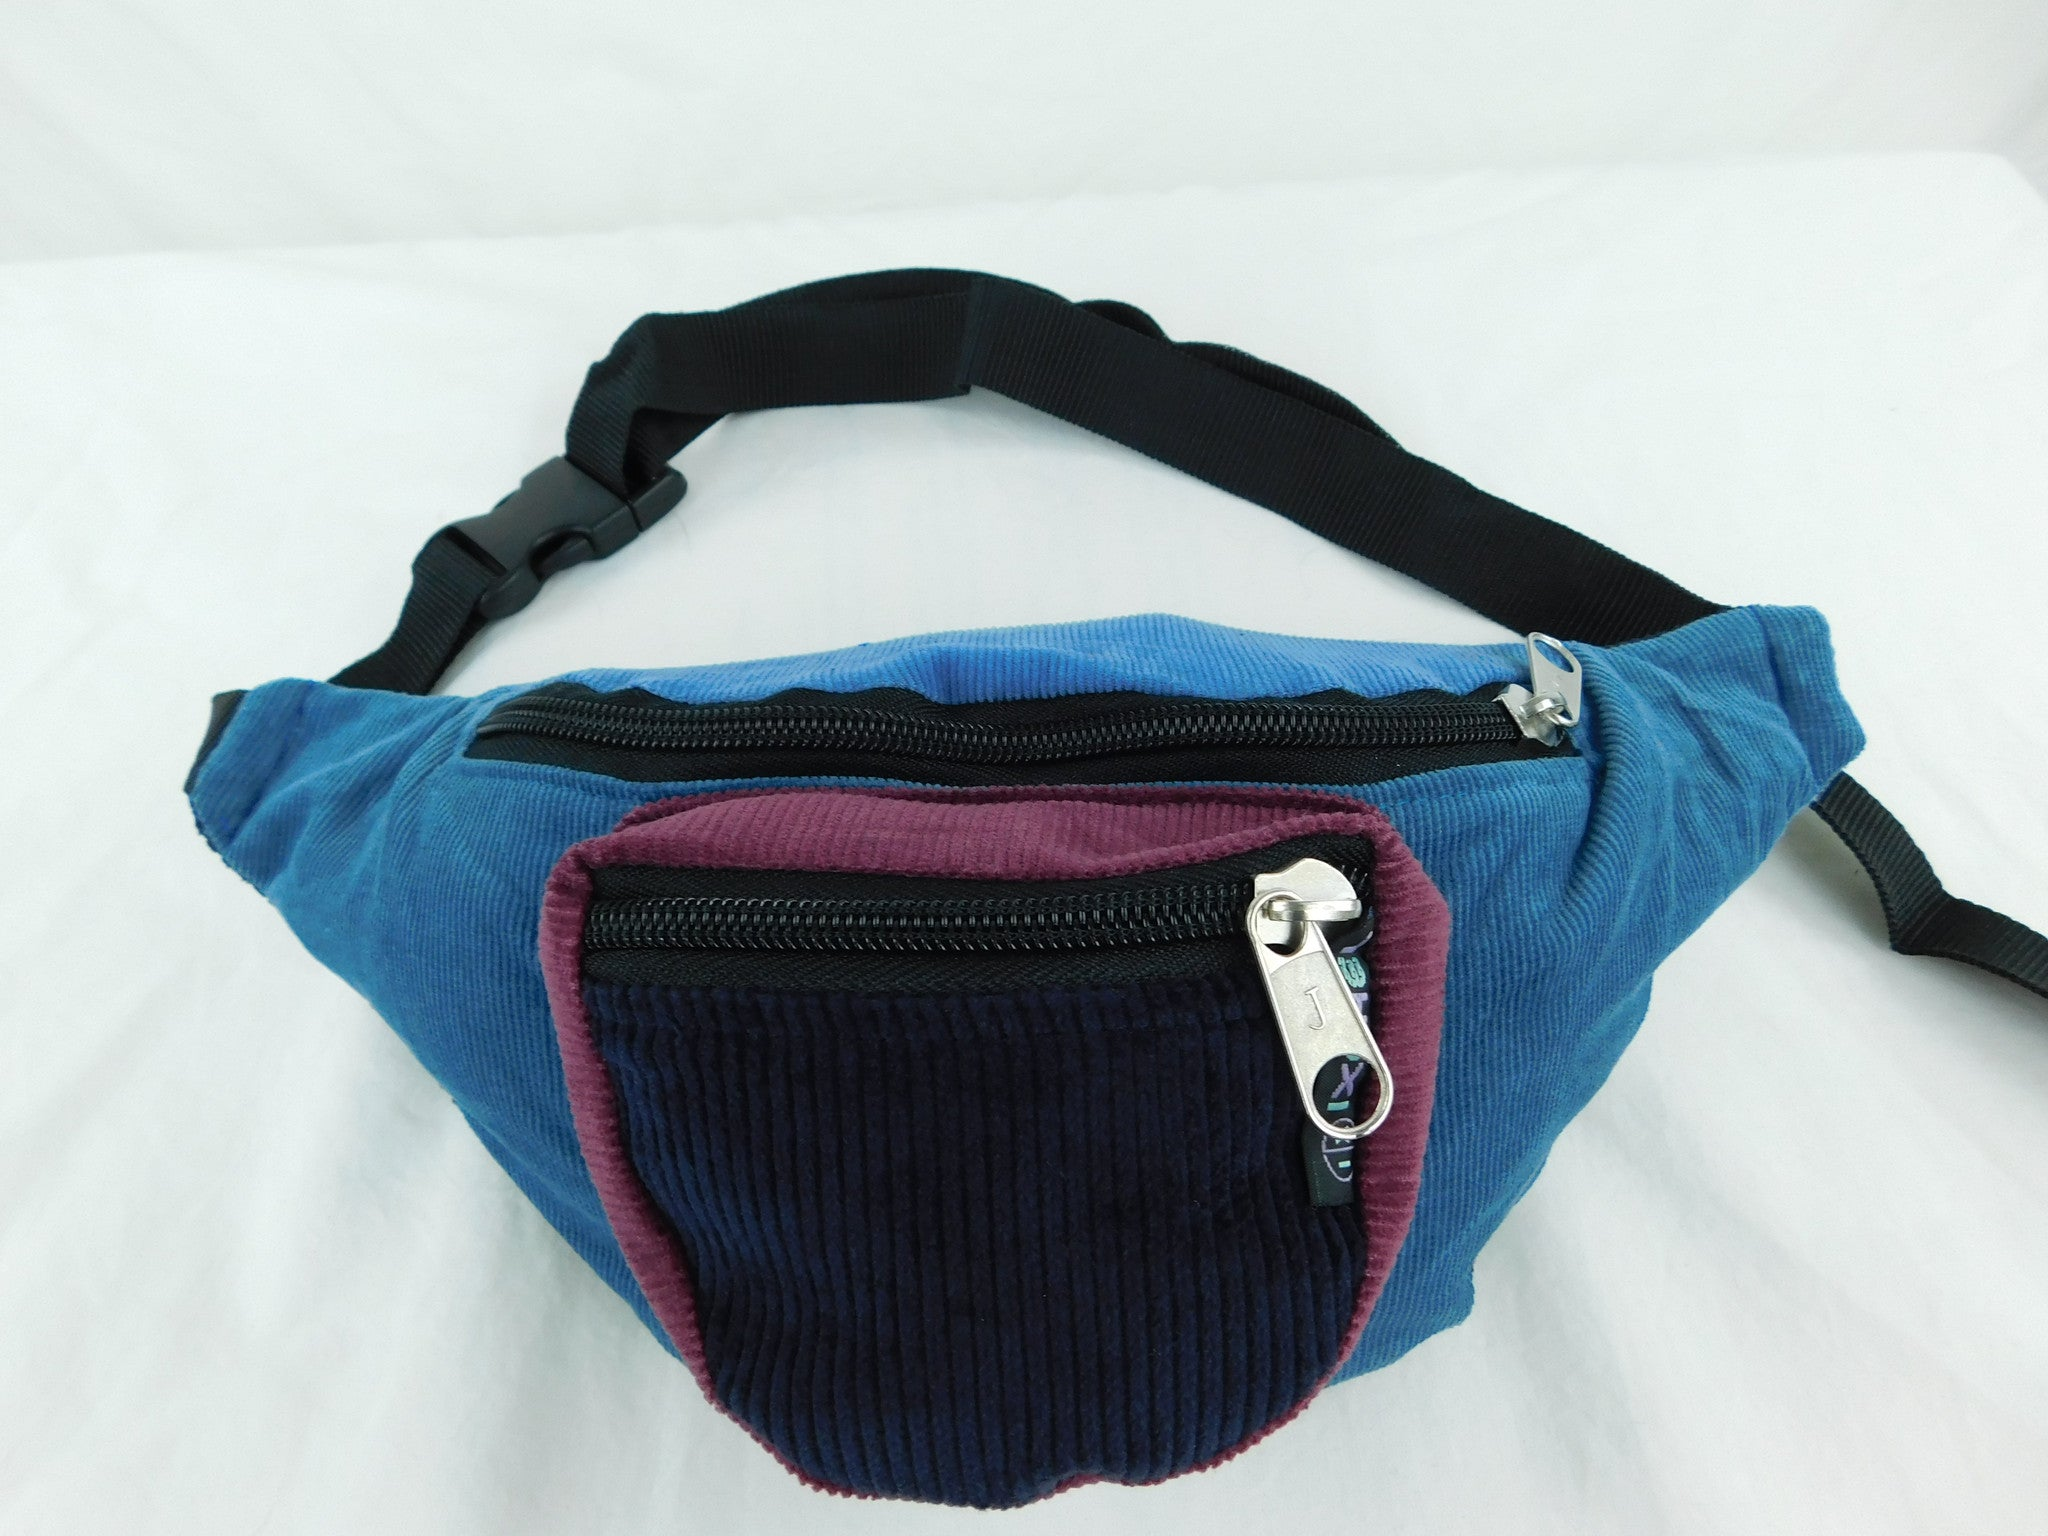 Patchwork corduroy waist pack with three pockets